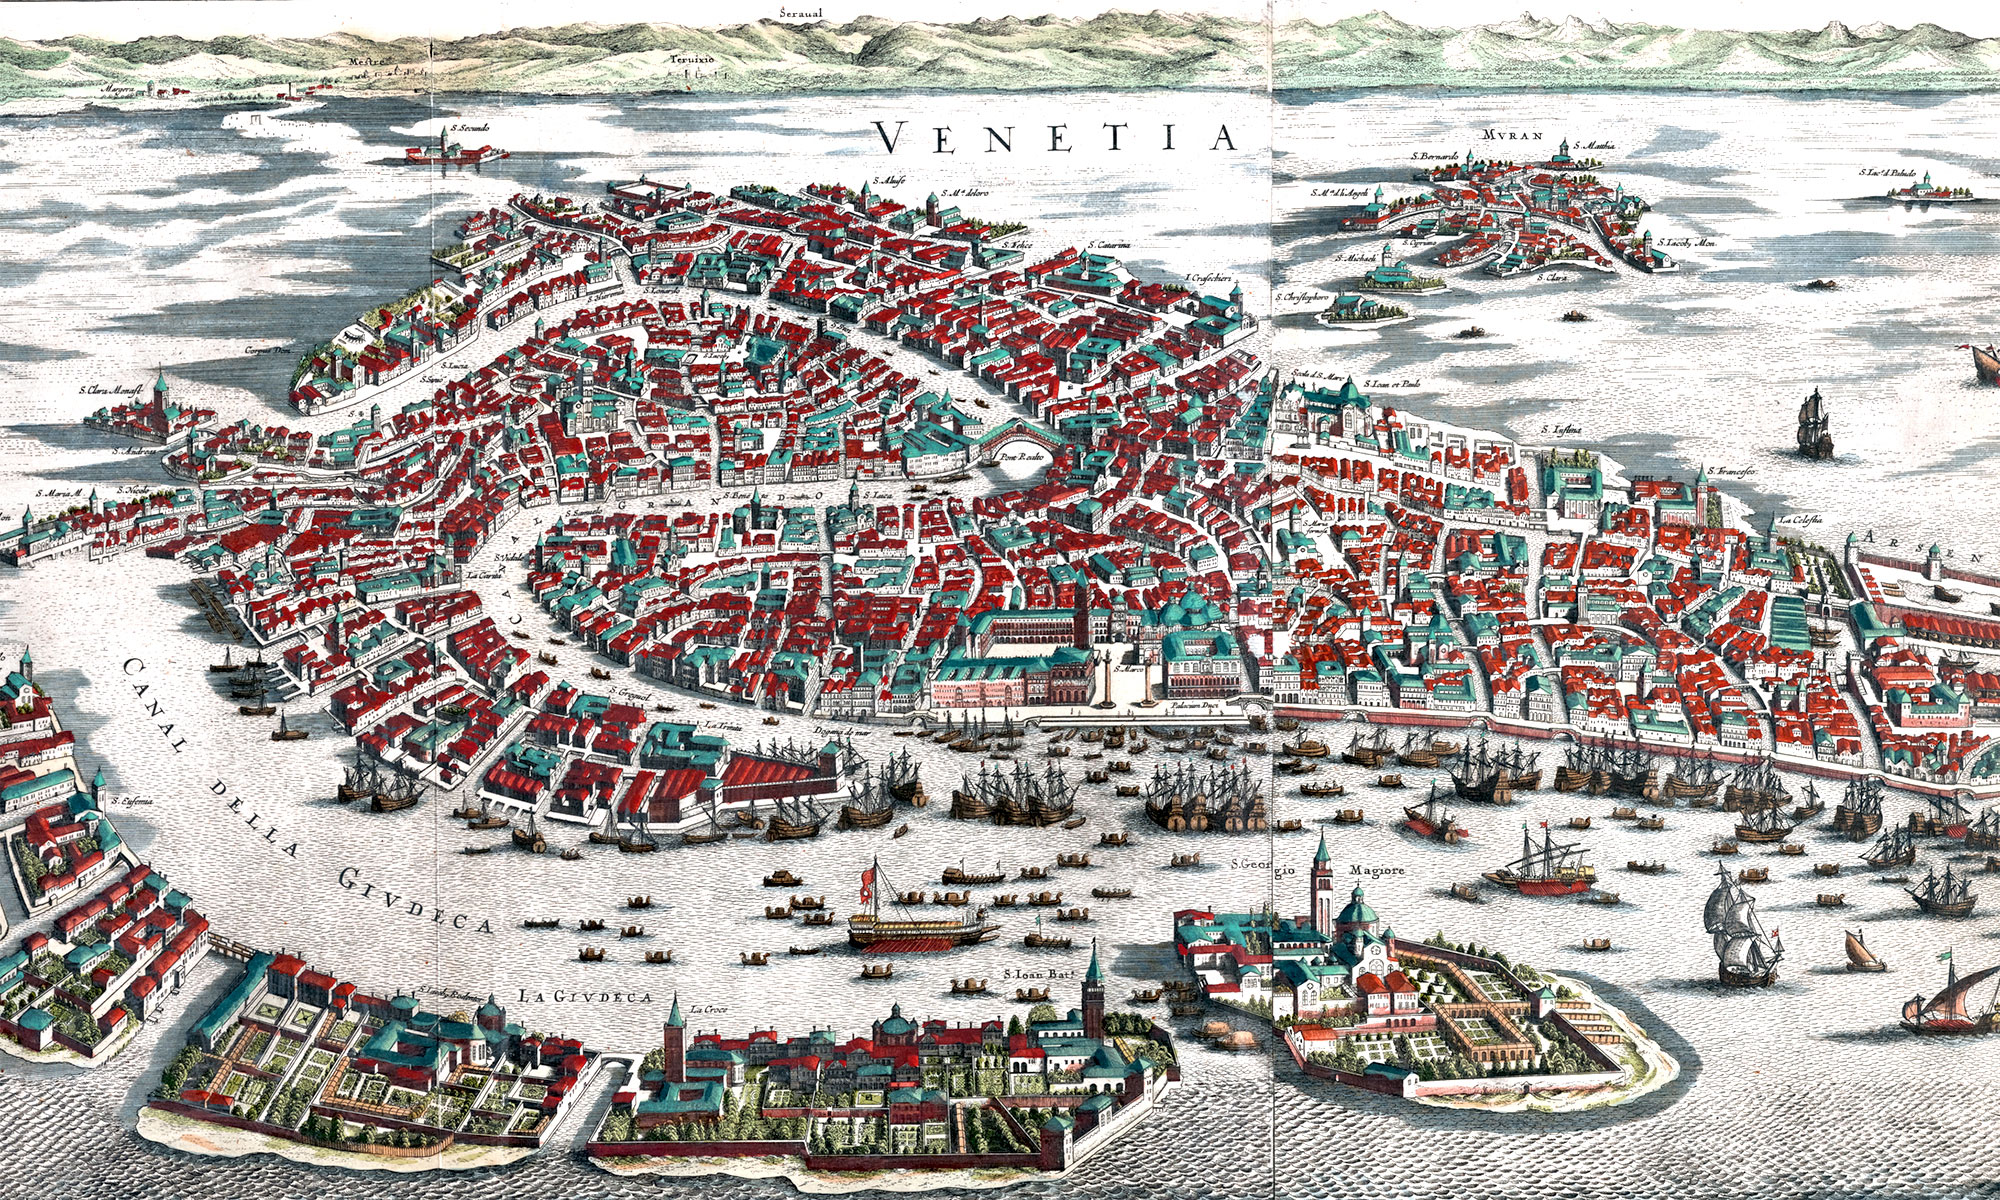 Map of Venice from 1641